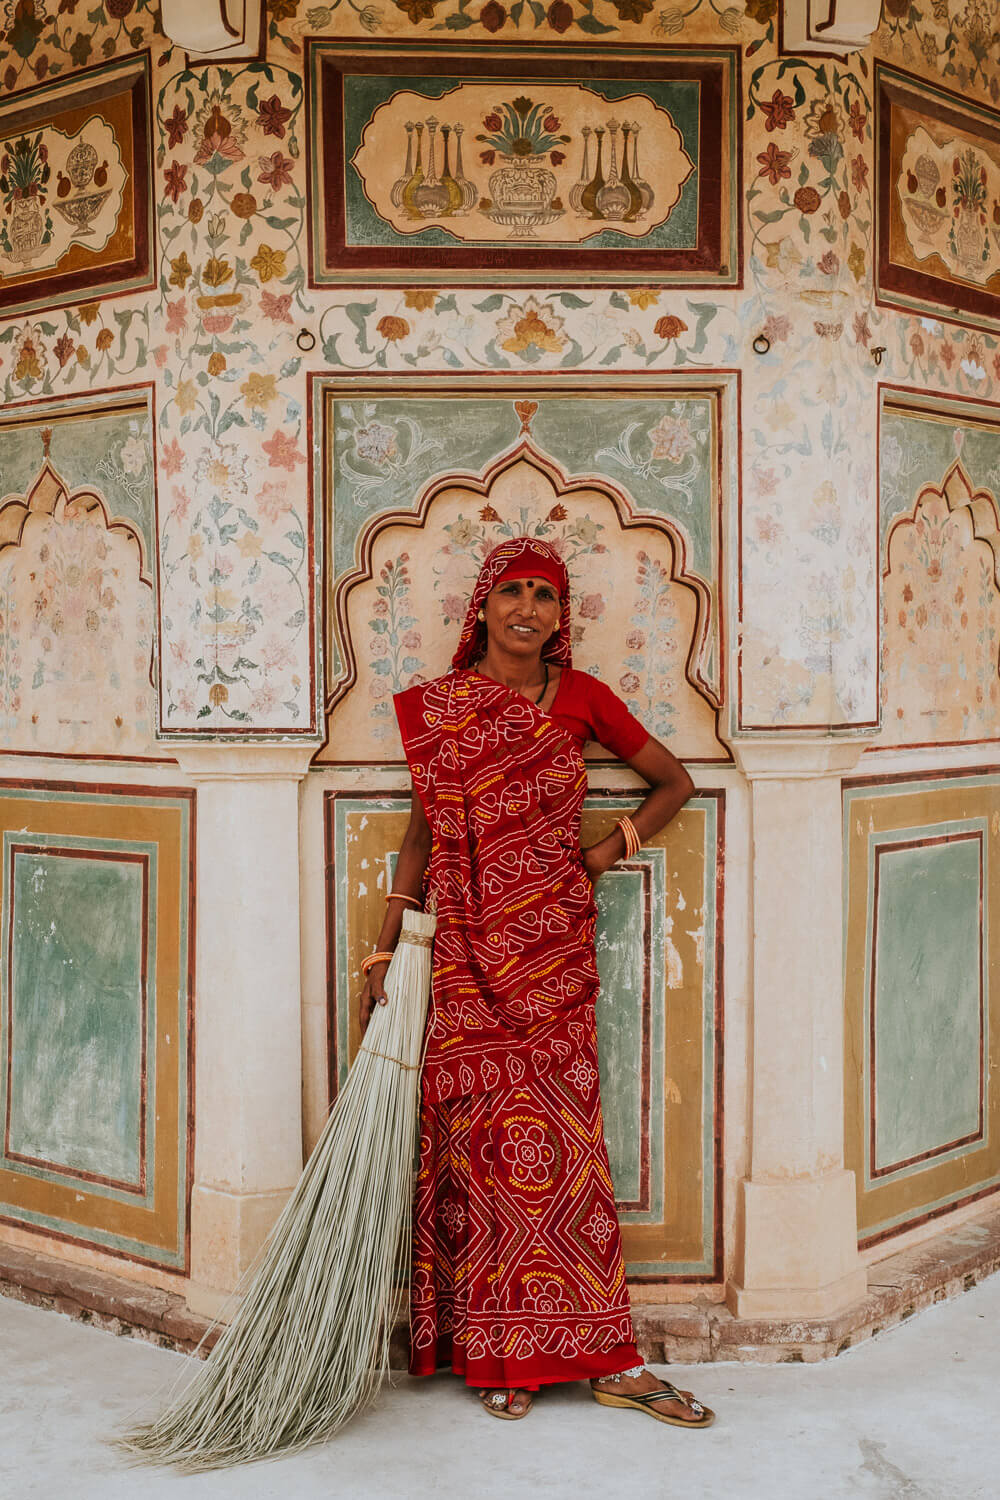 City Palace, Jaipur India | Photography by Kayla Mendez